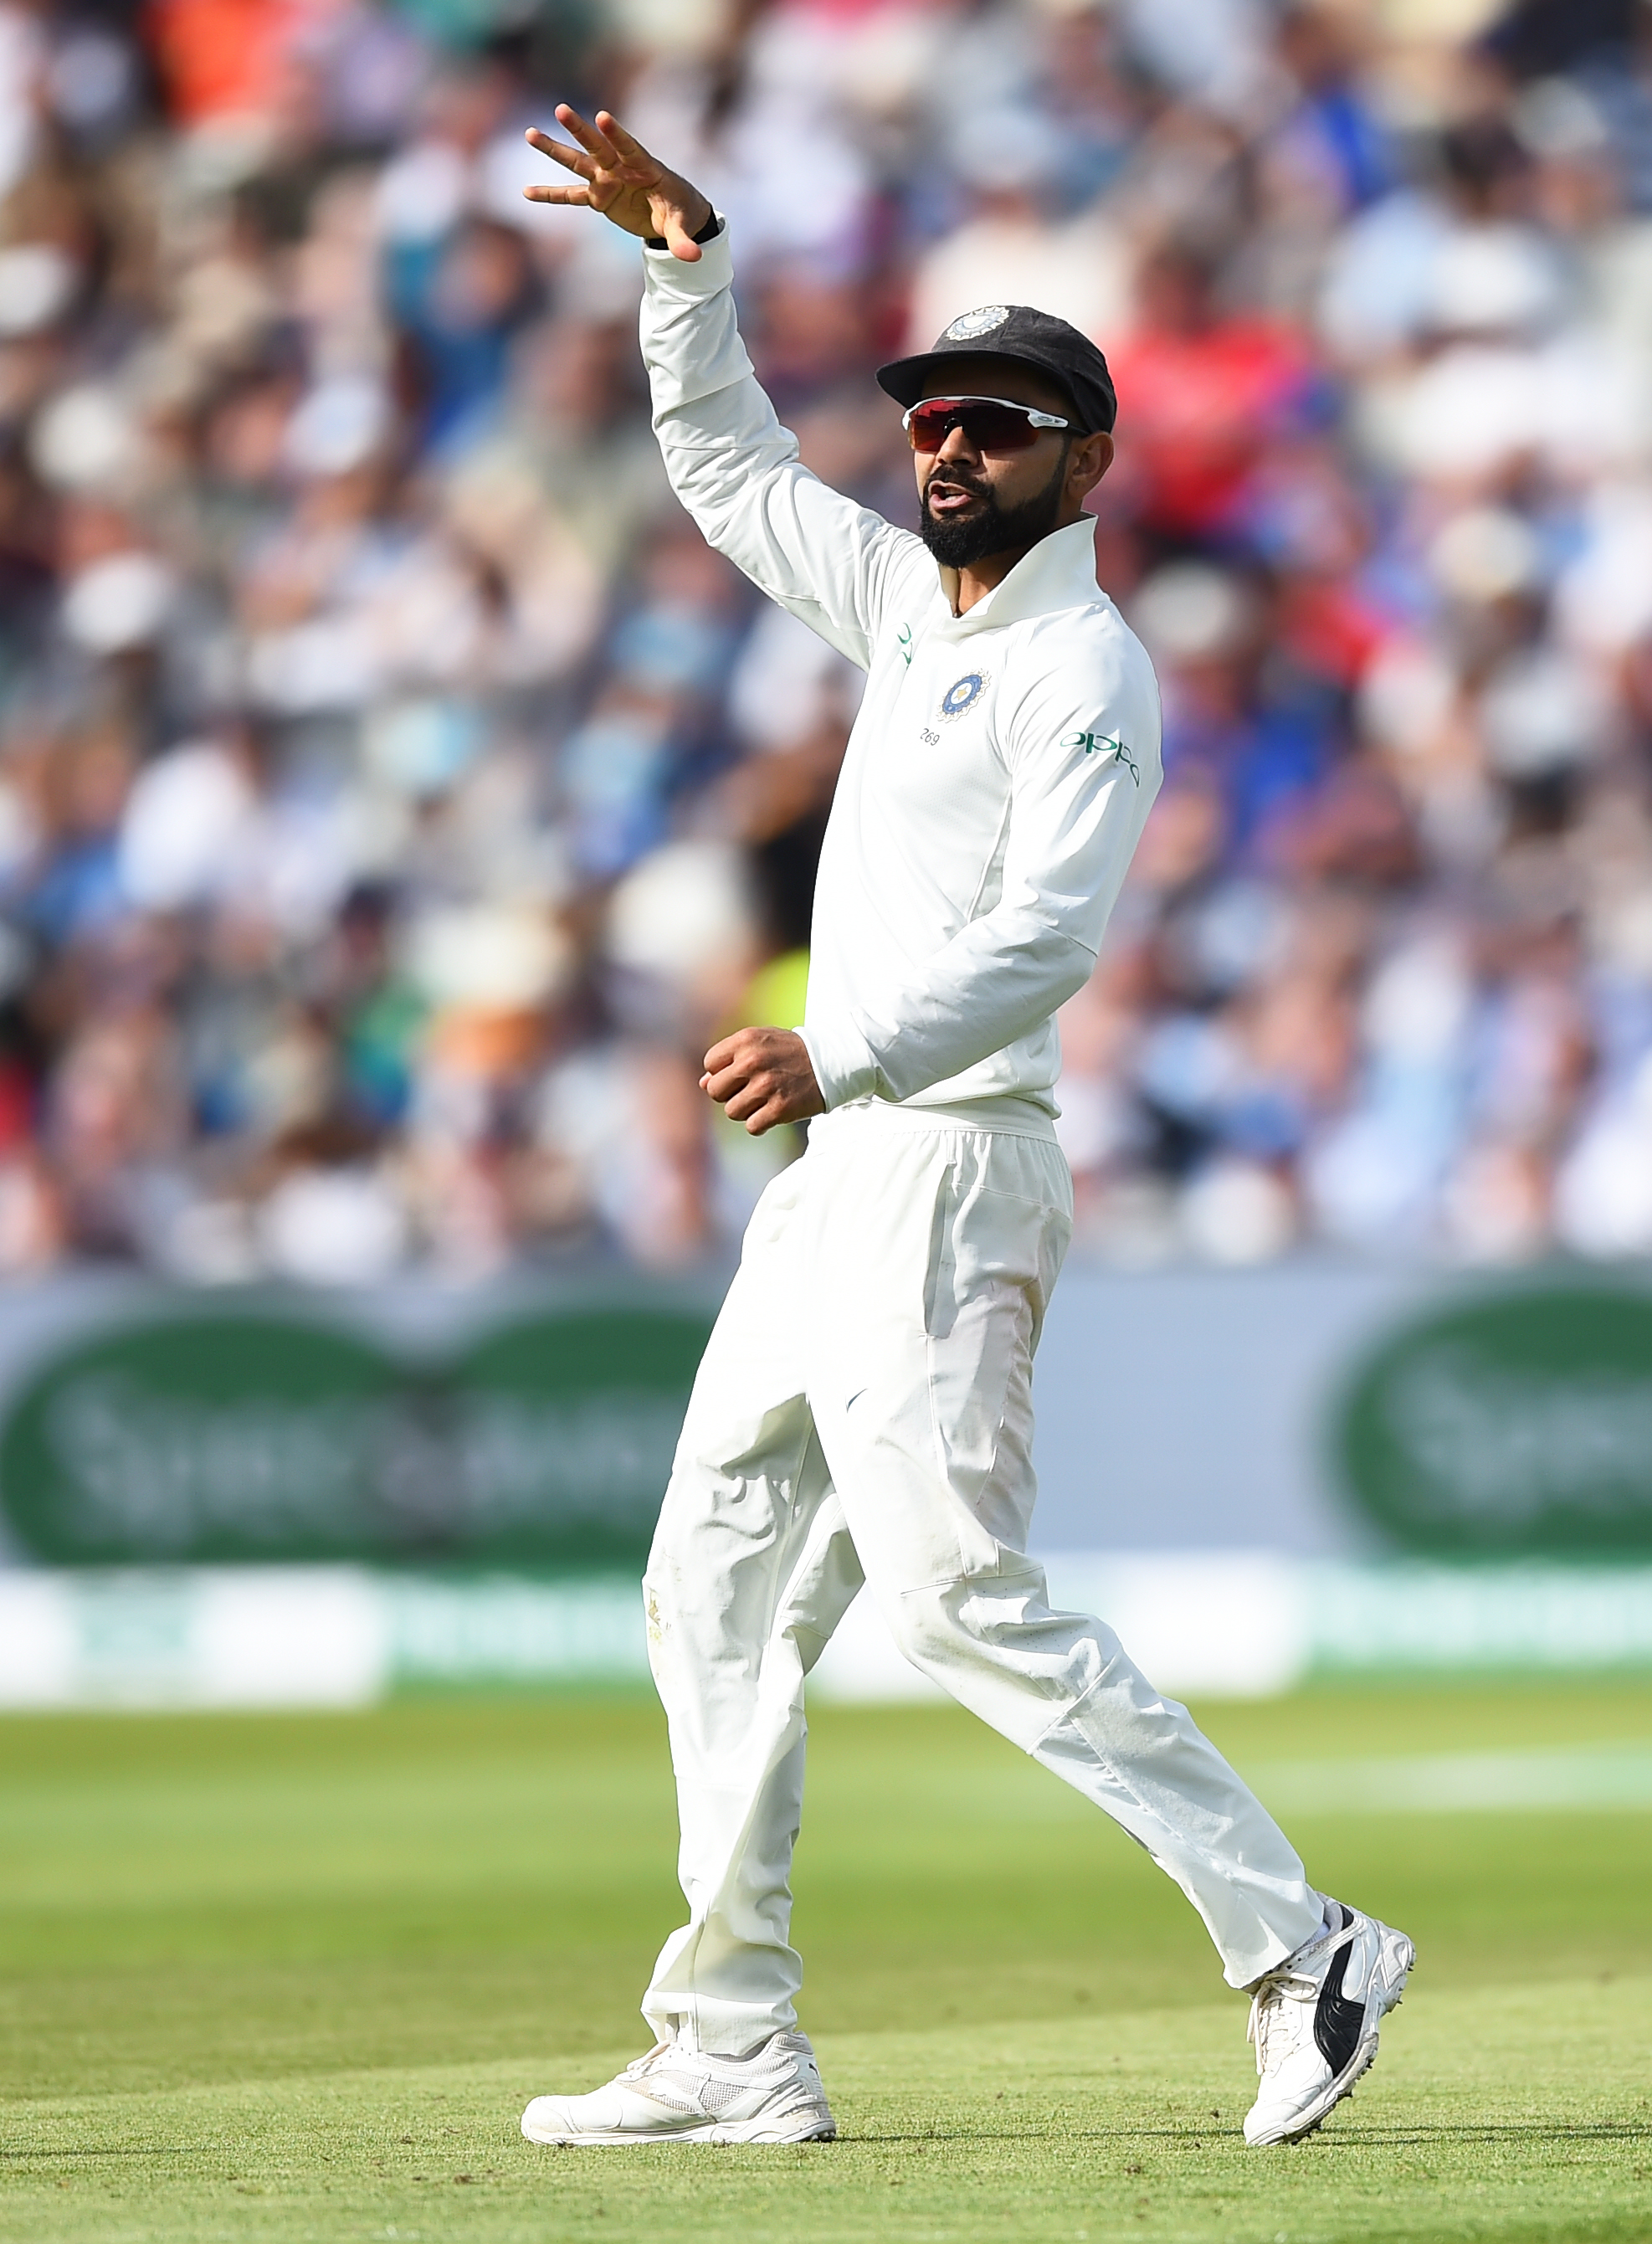 Kohli's drop the mic celebration after dismissing Joe Root. (Getty)